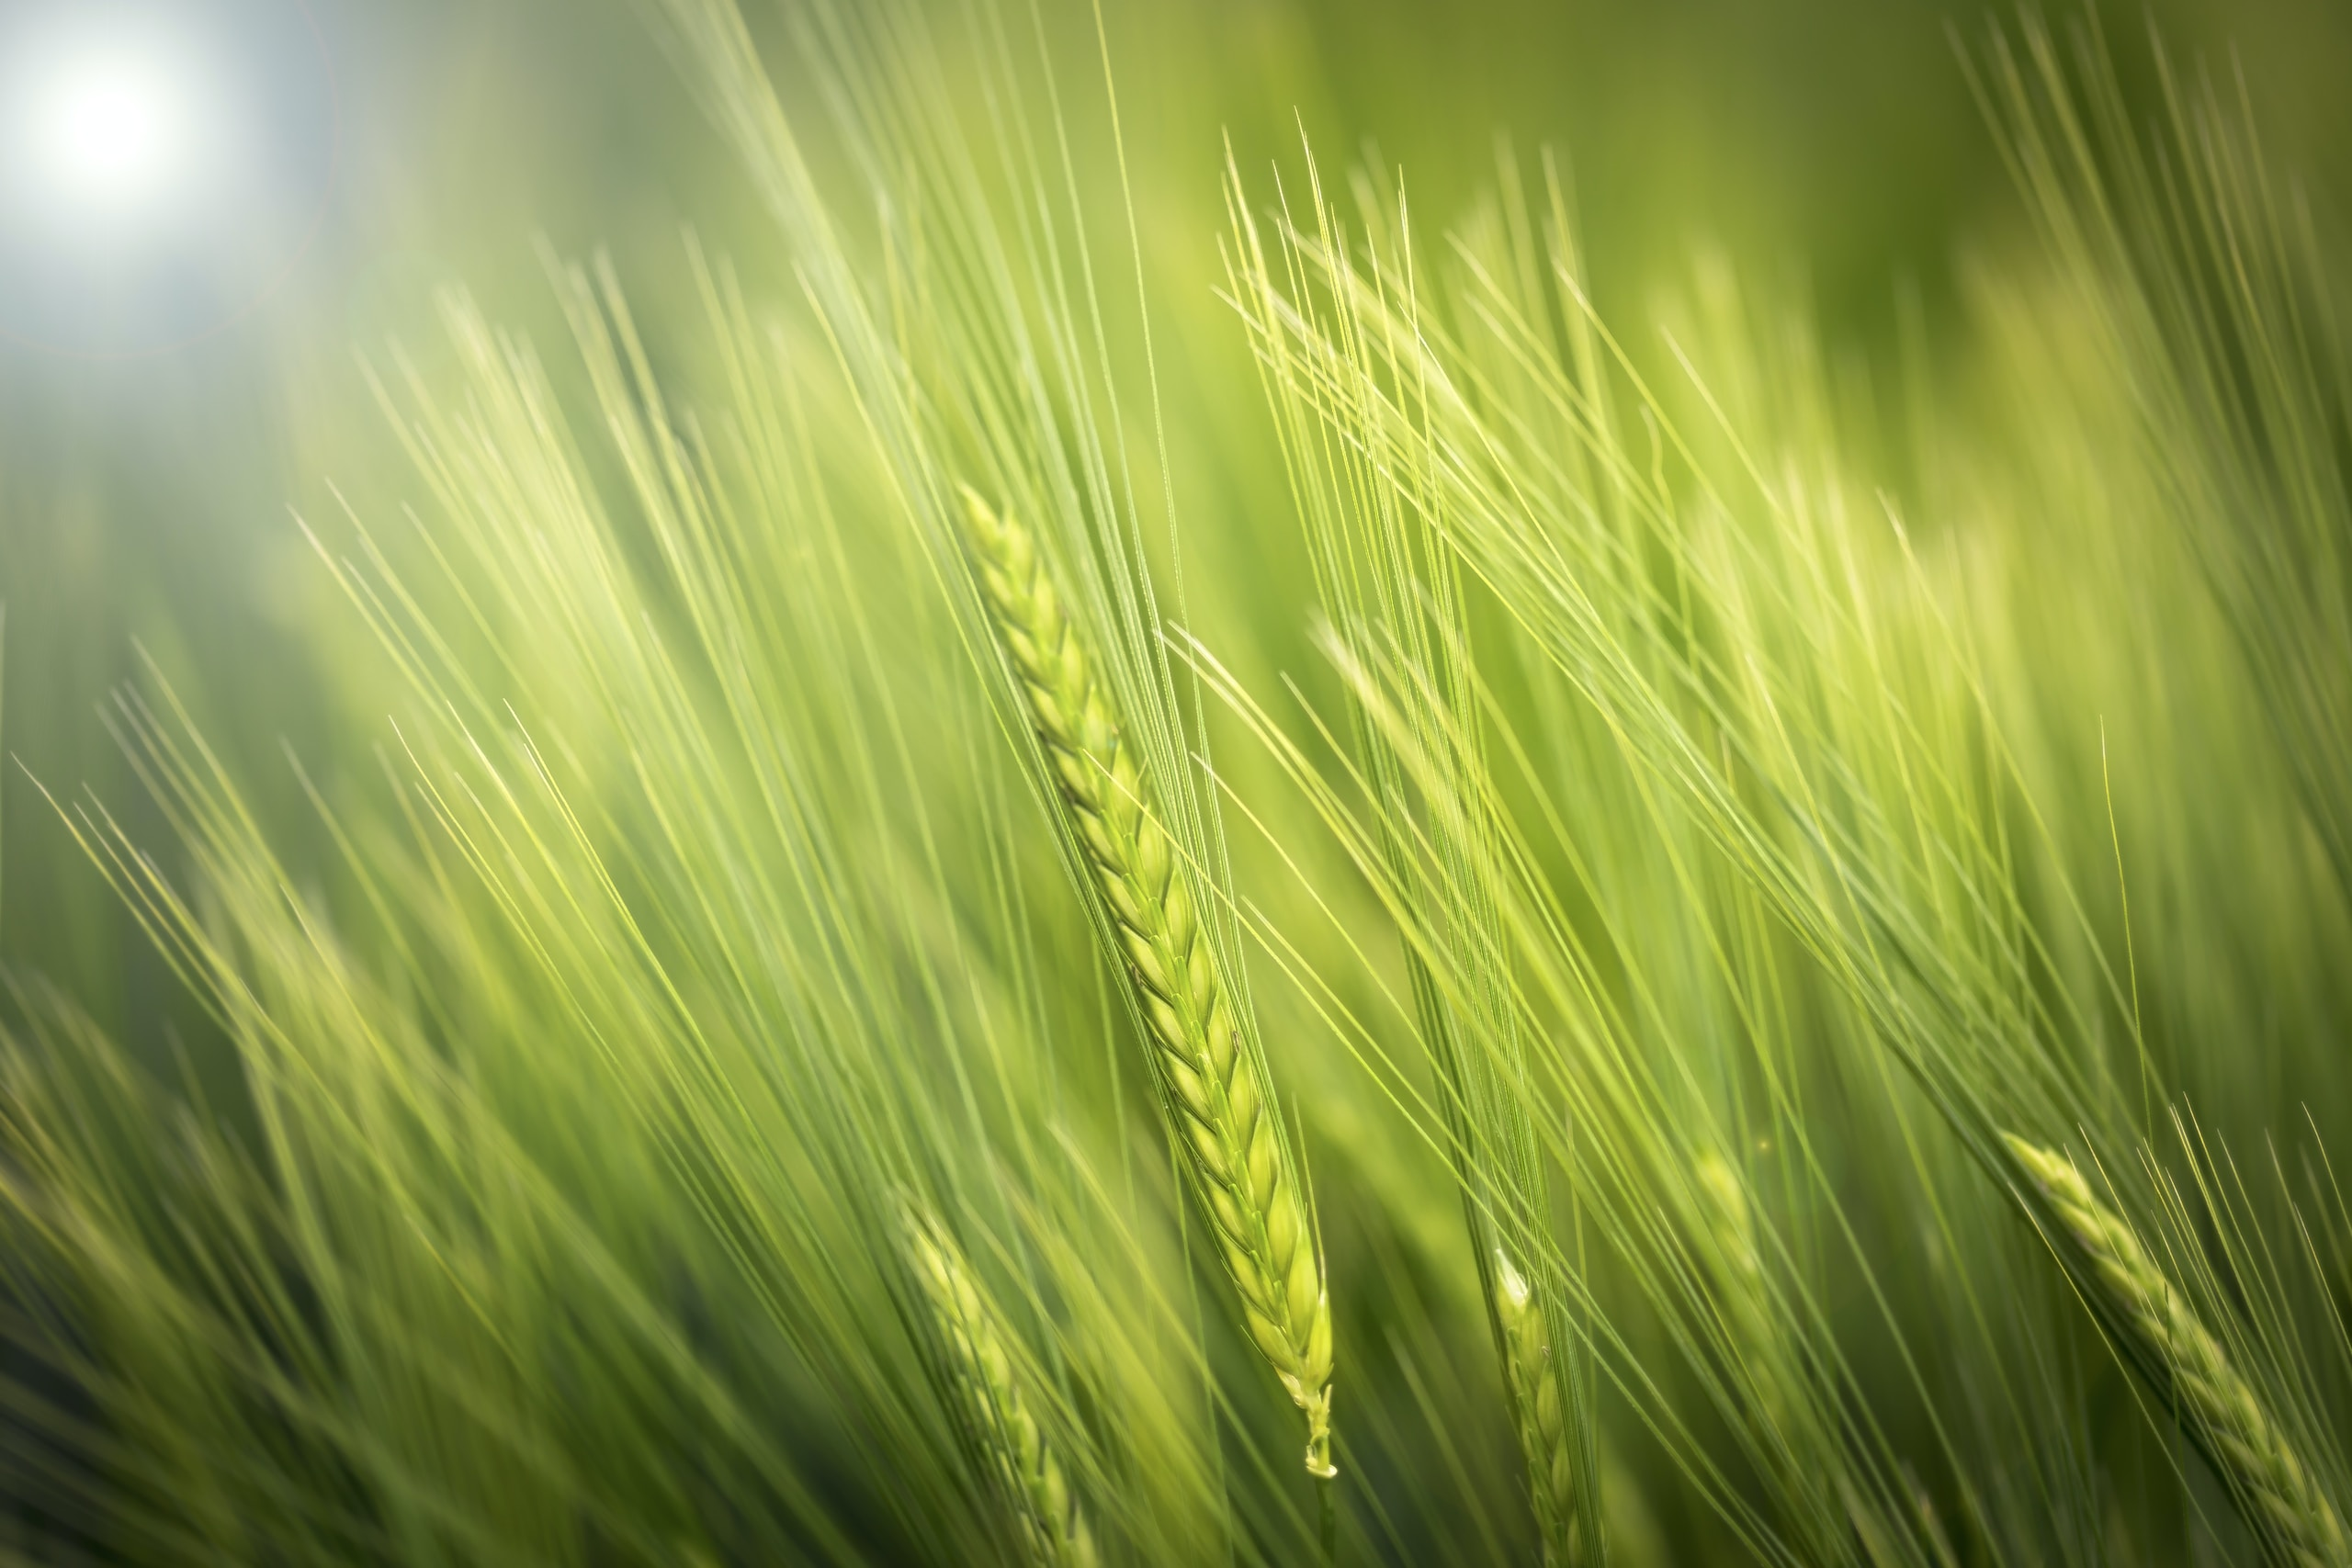 Parable of the wheat and weeds